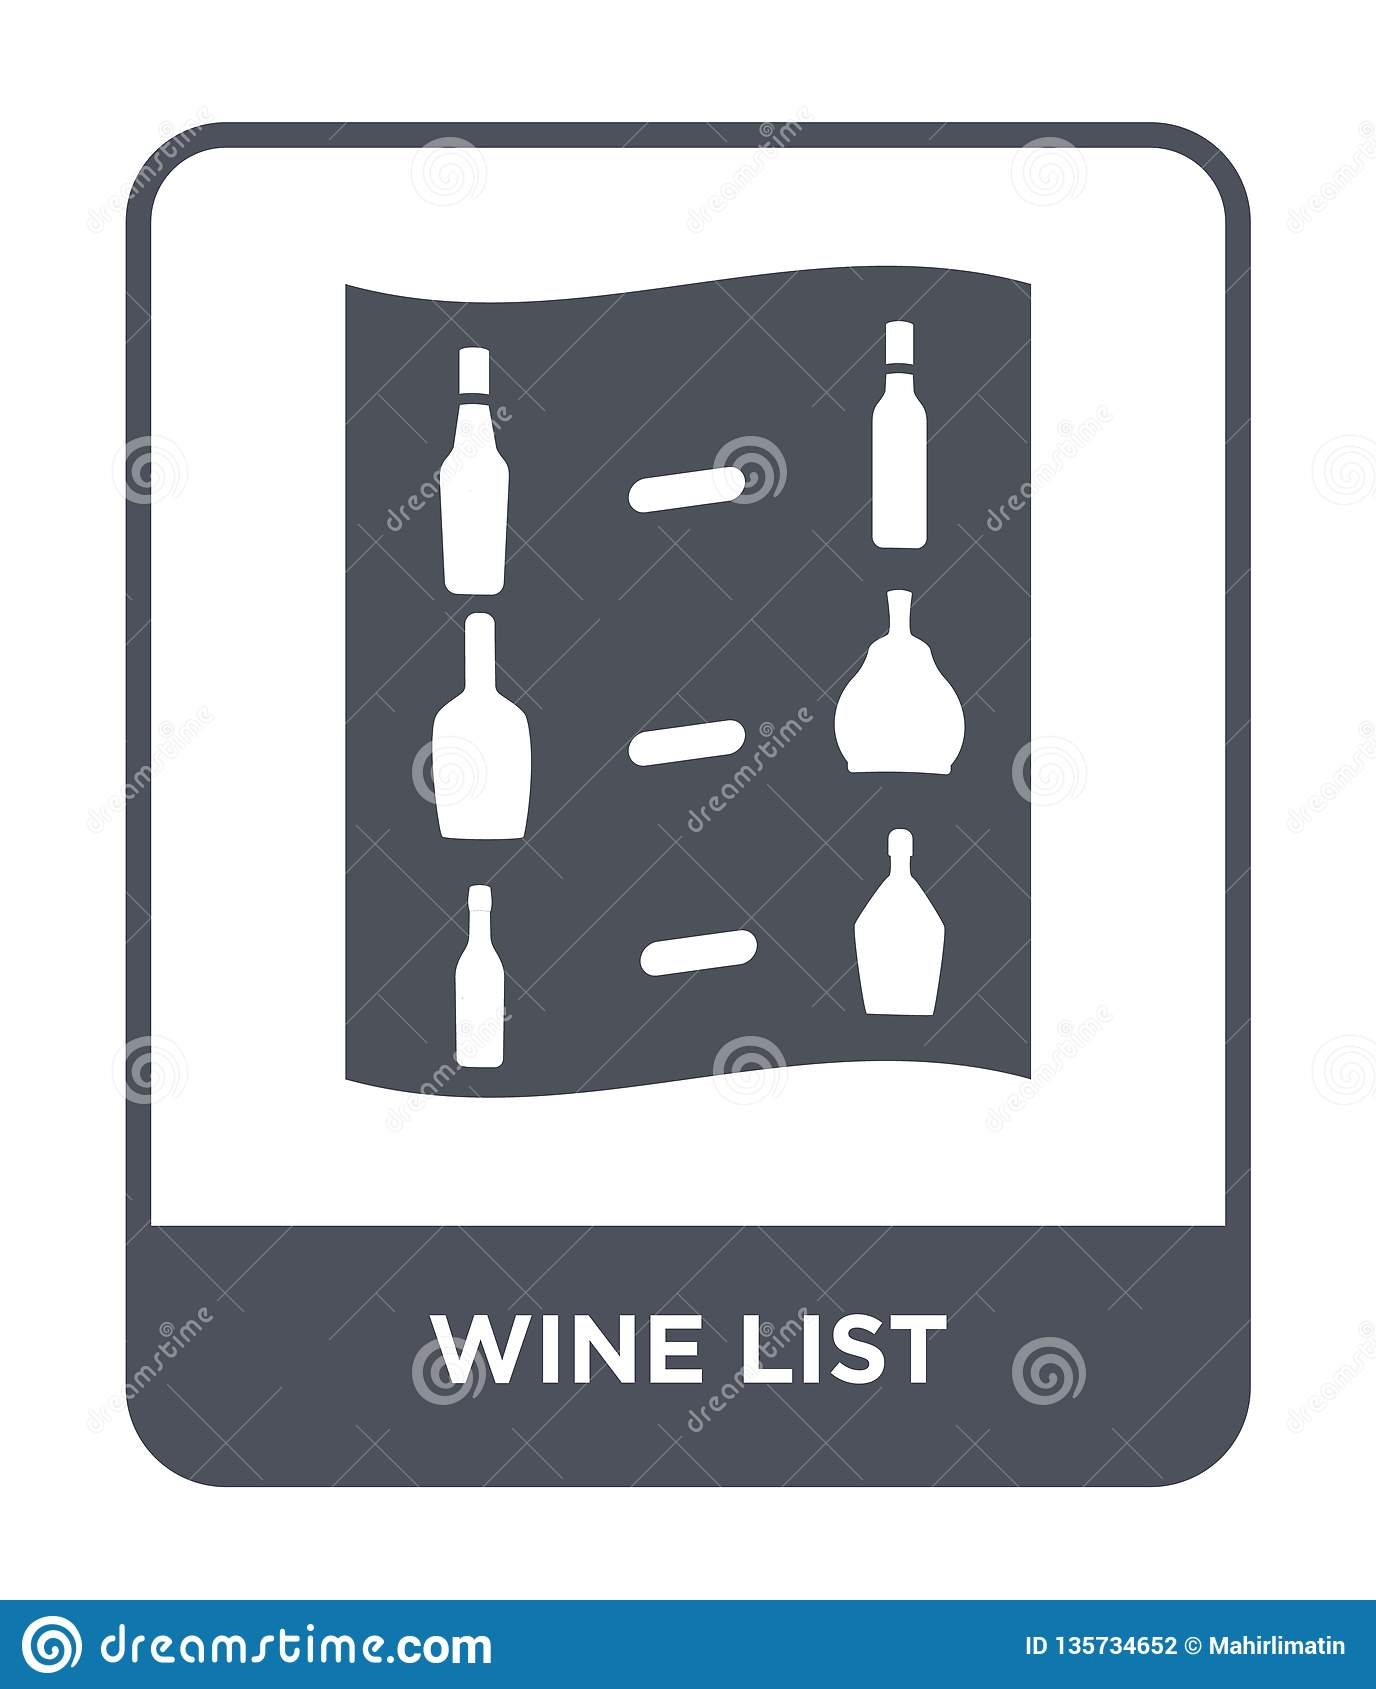 wine list icon in trendy design style. wine list icon isolated on white background. wine list vector icon simple and modern flat